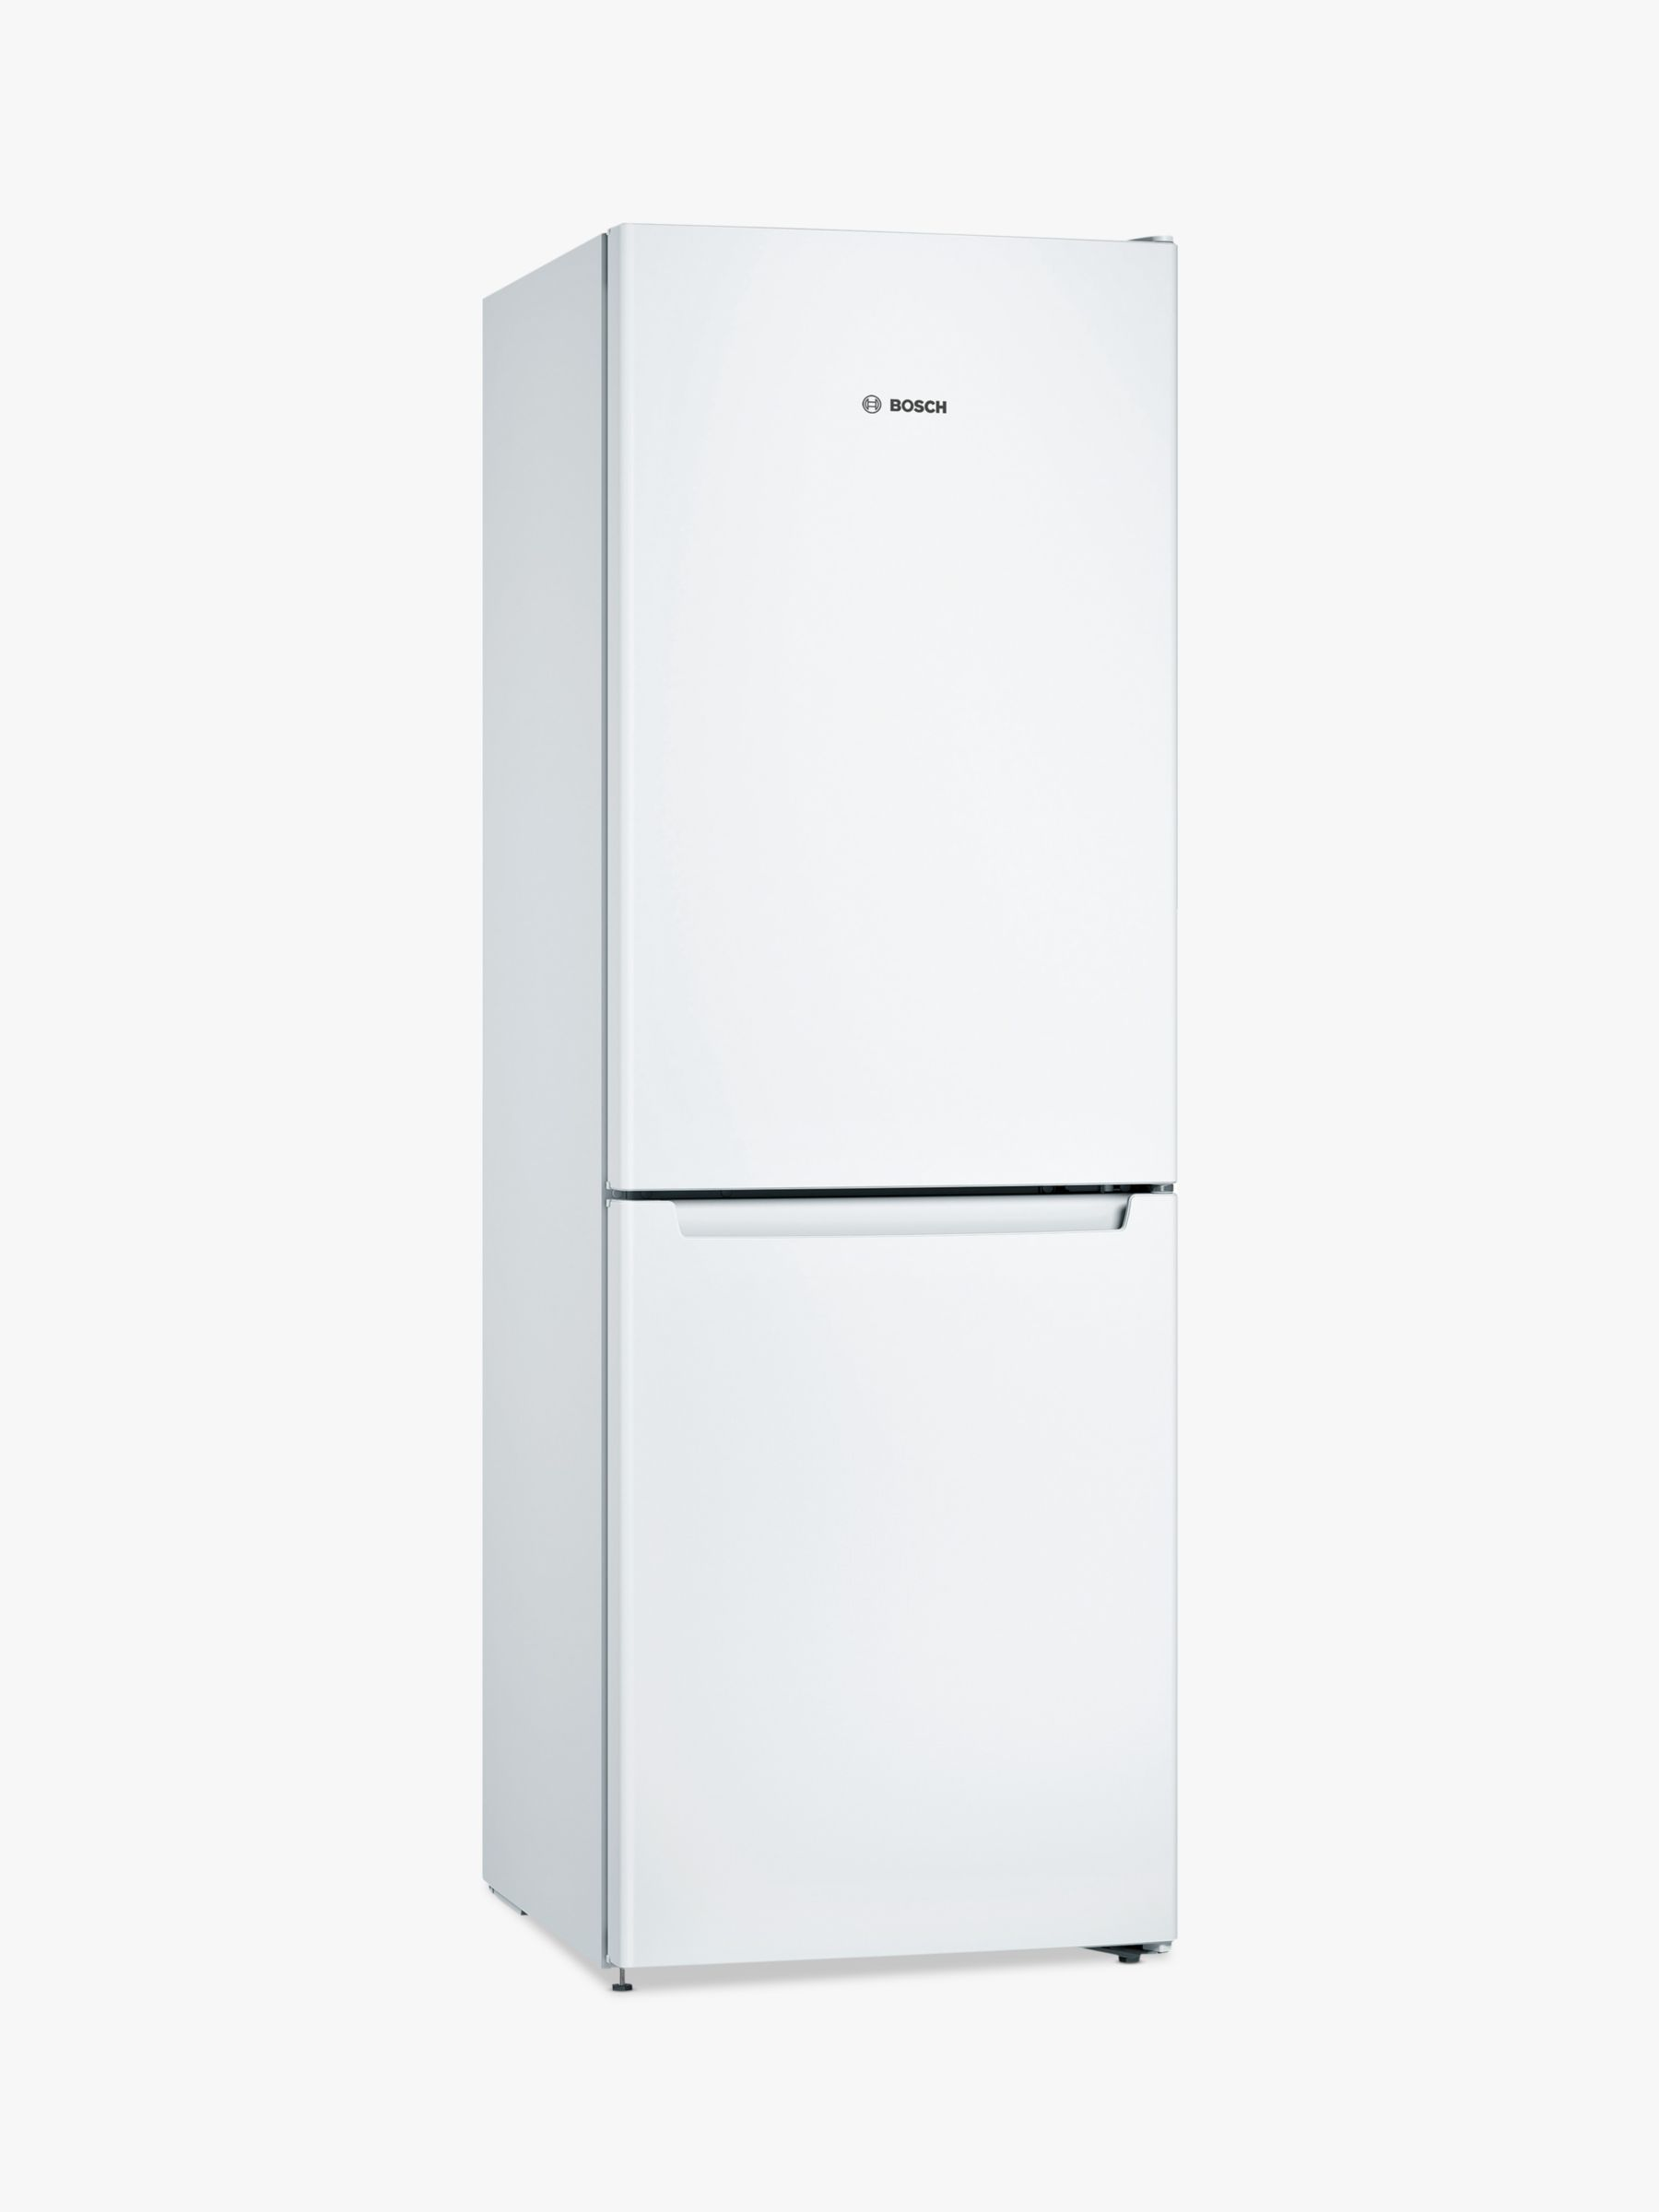 Fridge Freezer Bosch Kgn33nw3ag Freestanding Fridge Freezer A Energy Rating